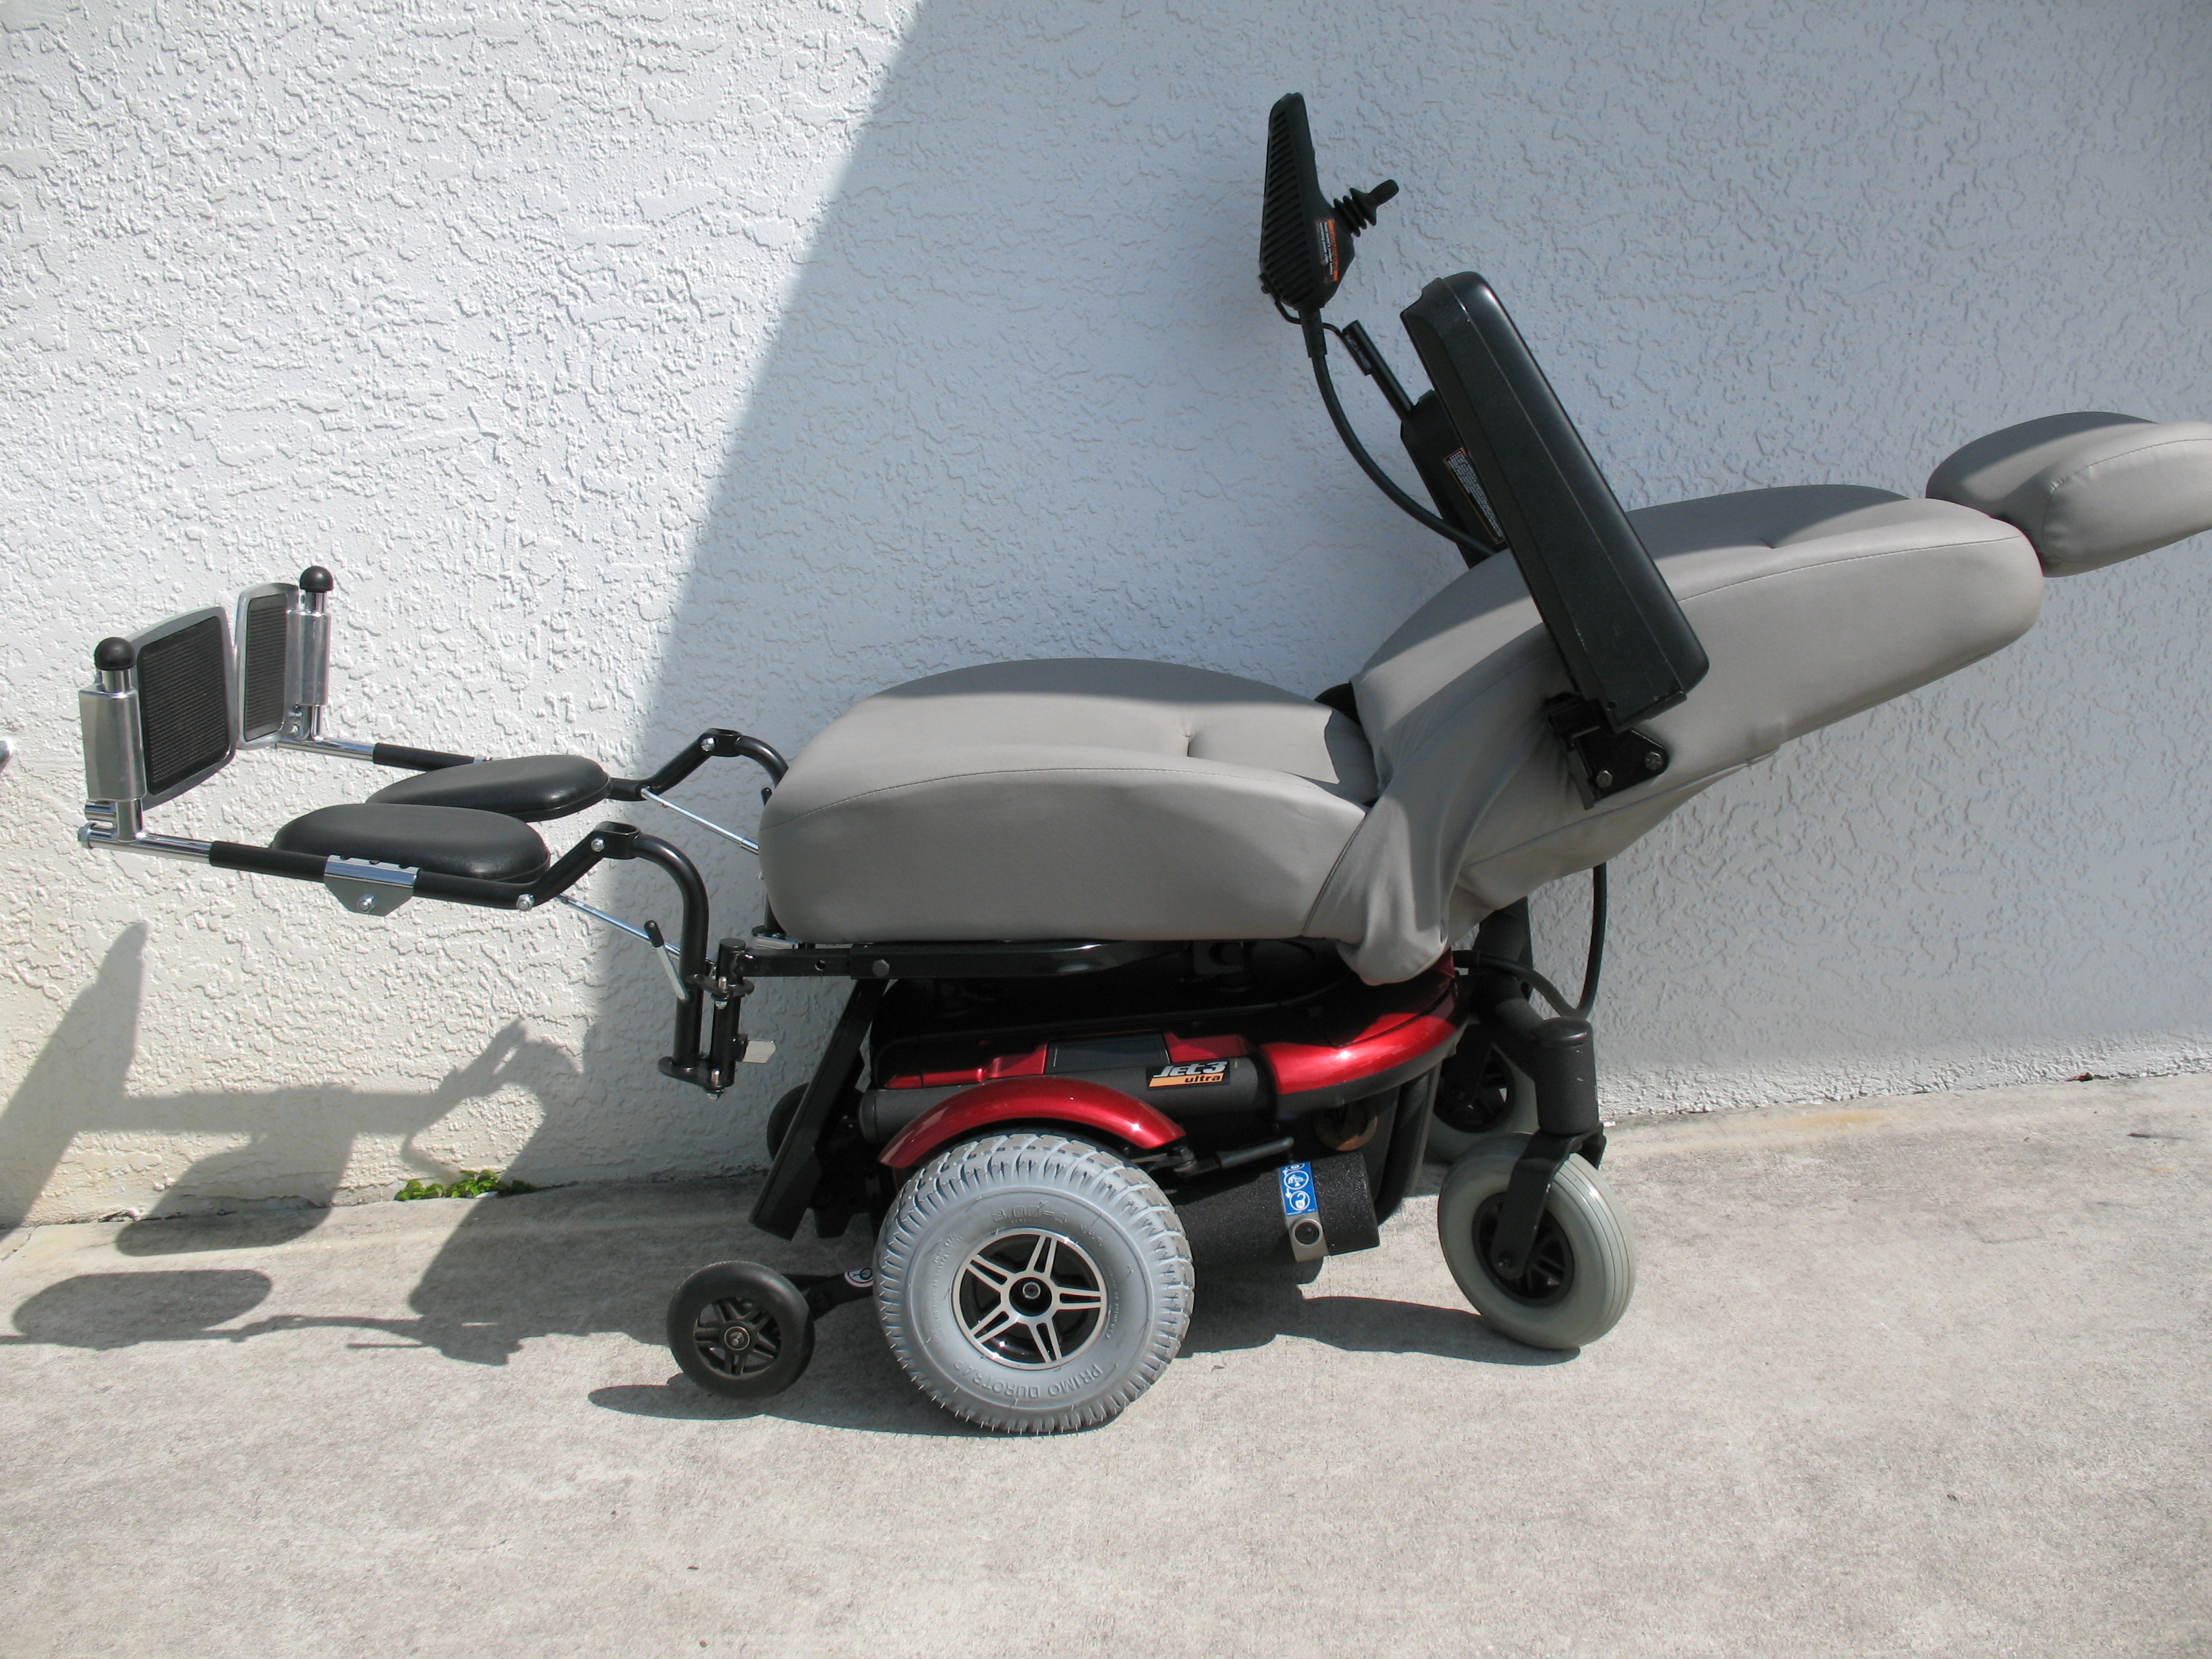 the jazzy jet 3 ultra power chair with full recline super high back the jet 3 ultra delivers superb sleek styling and